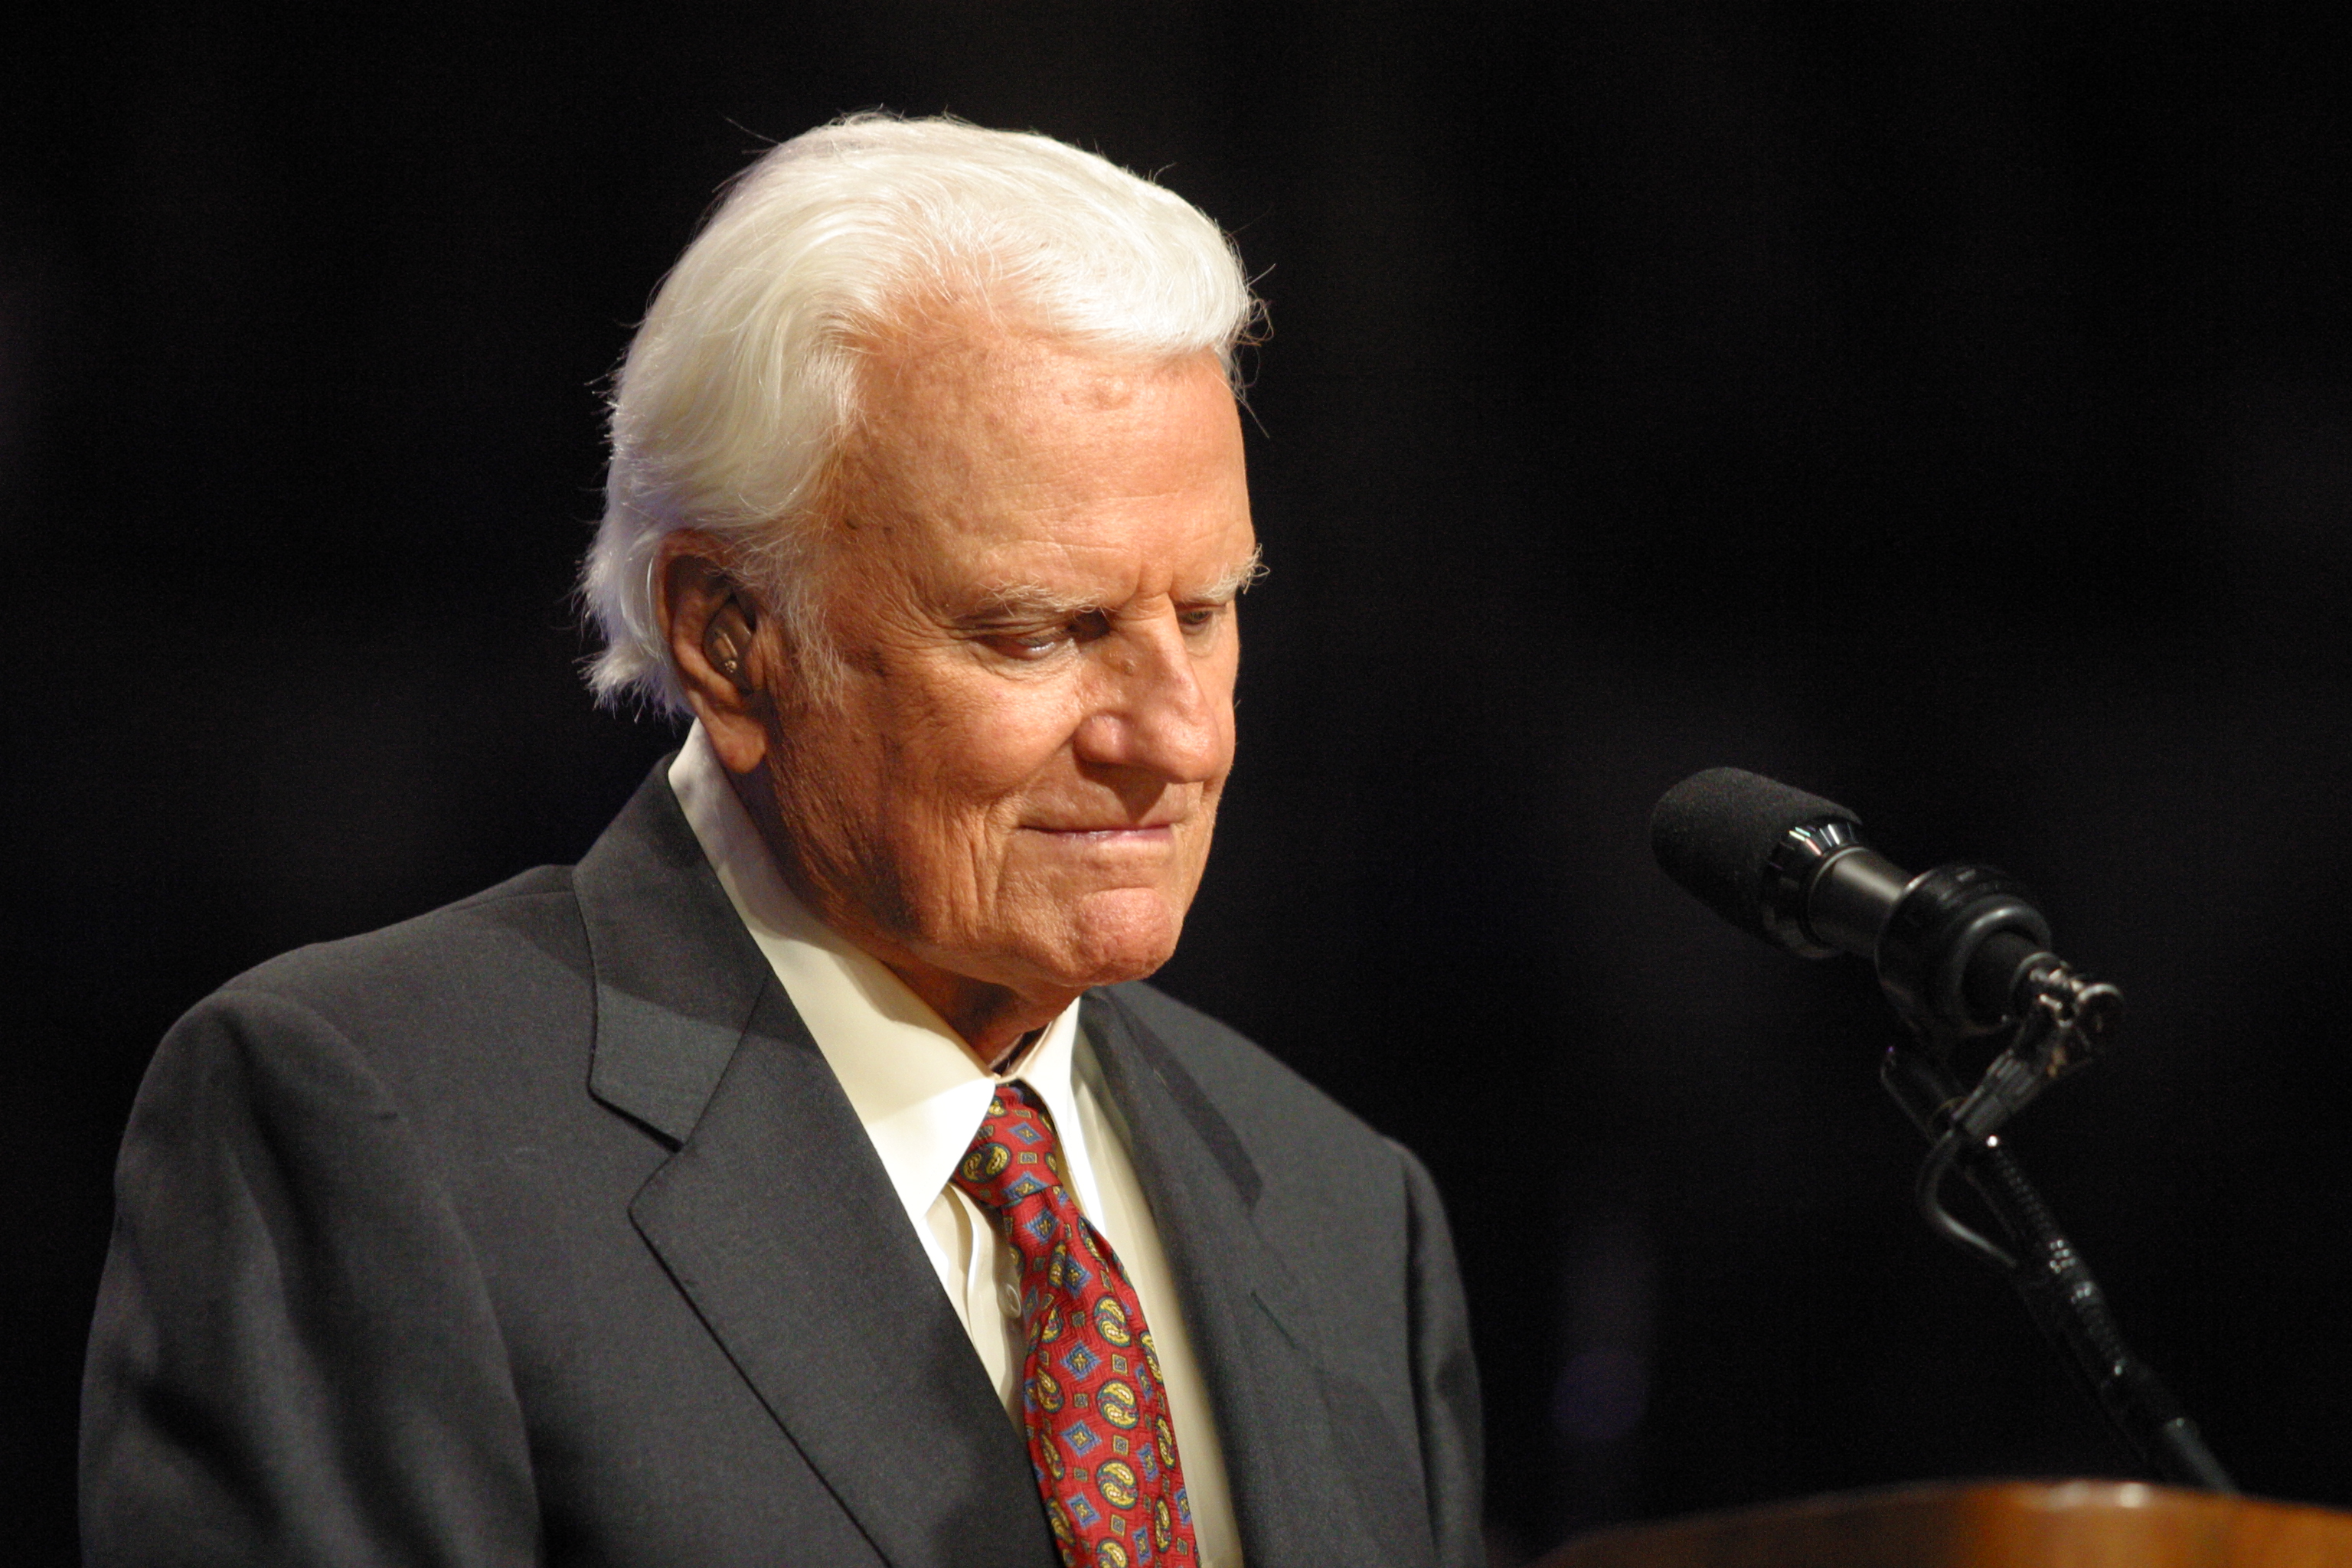 ee billy graham chaplains - 1024×682